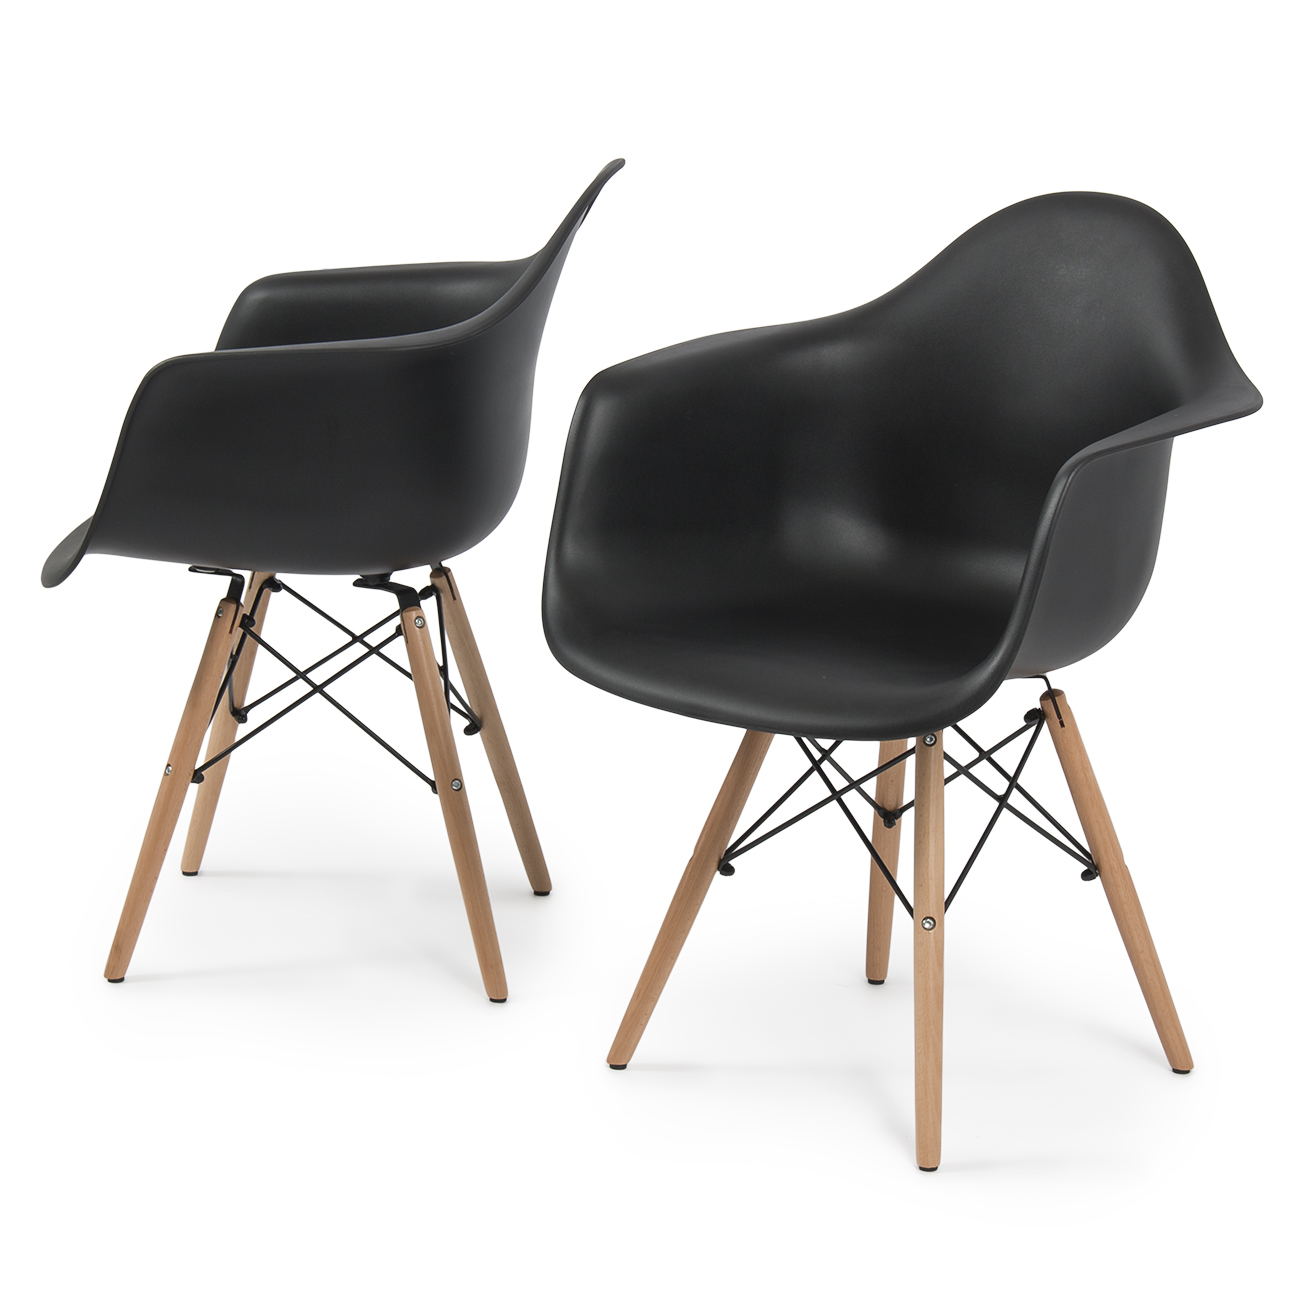 NEW Set of 2 Eames DSW Mid Century Dining Arm Chair  : 014 hg 30202 bk1 from www.ebay.com size 1300 x 1300 jpeg 440kB